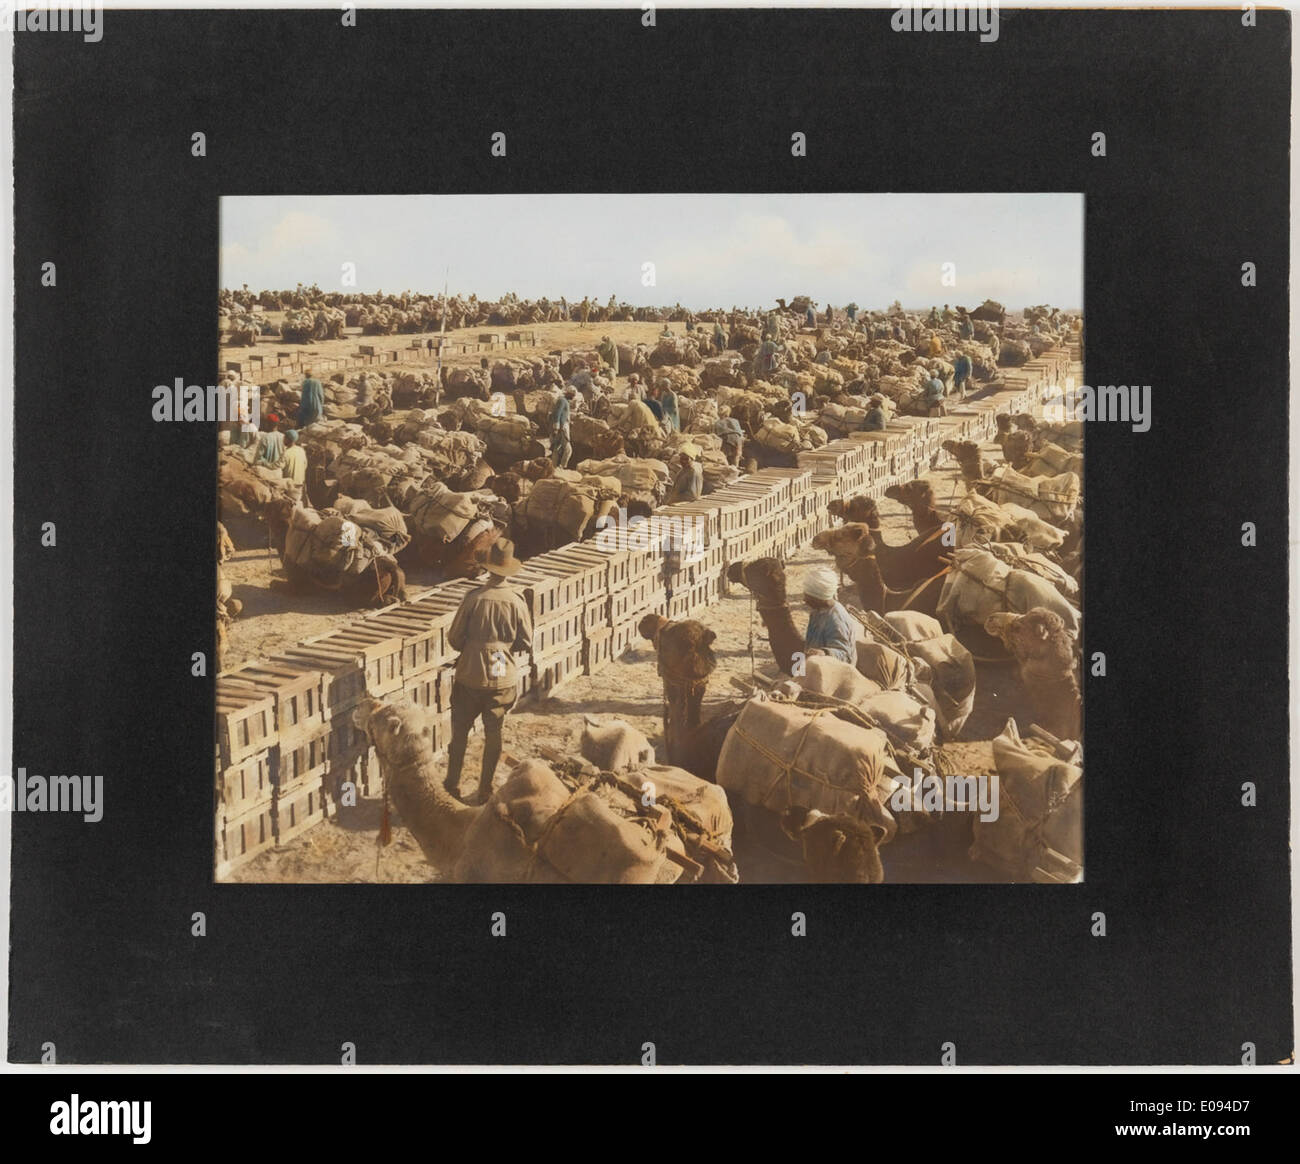 Loading camels at railhead, Palestine by Frank Hurley Stock Photo